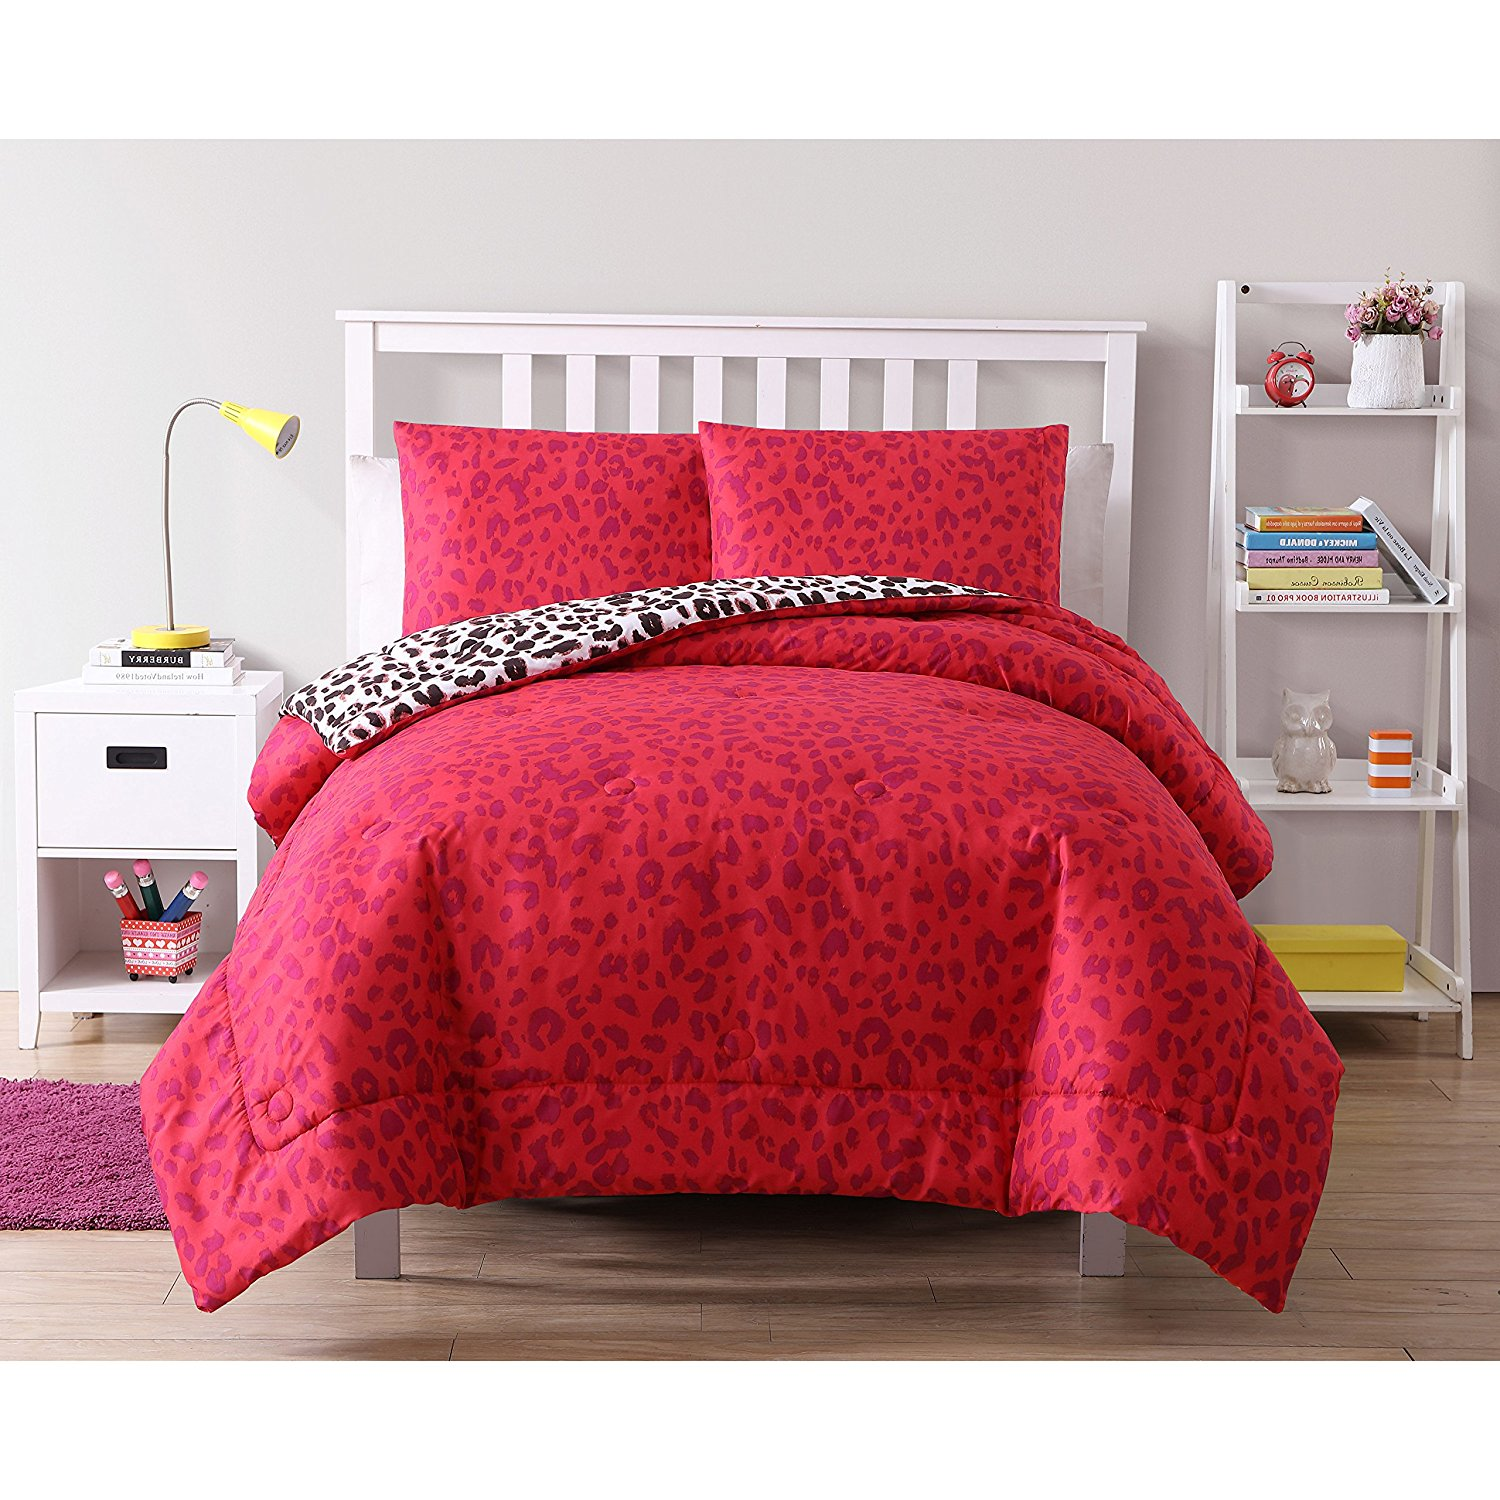 ON 2 Piece Girls Hot Pink Purple Leopard Print Themed Comforter Twin Set, Vibrant Cheetah Floral Printed Bedding, Wild Safari Animal Pattern All Over Orange Flower Pattern, Polyester